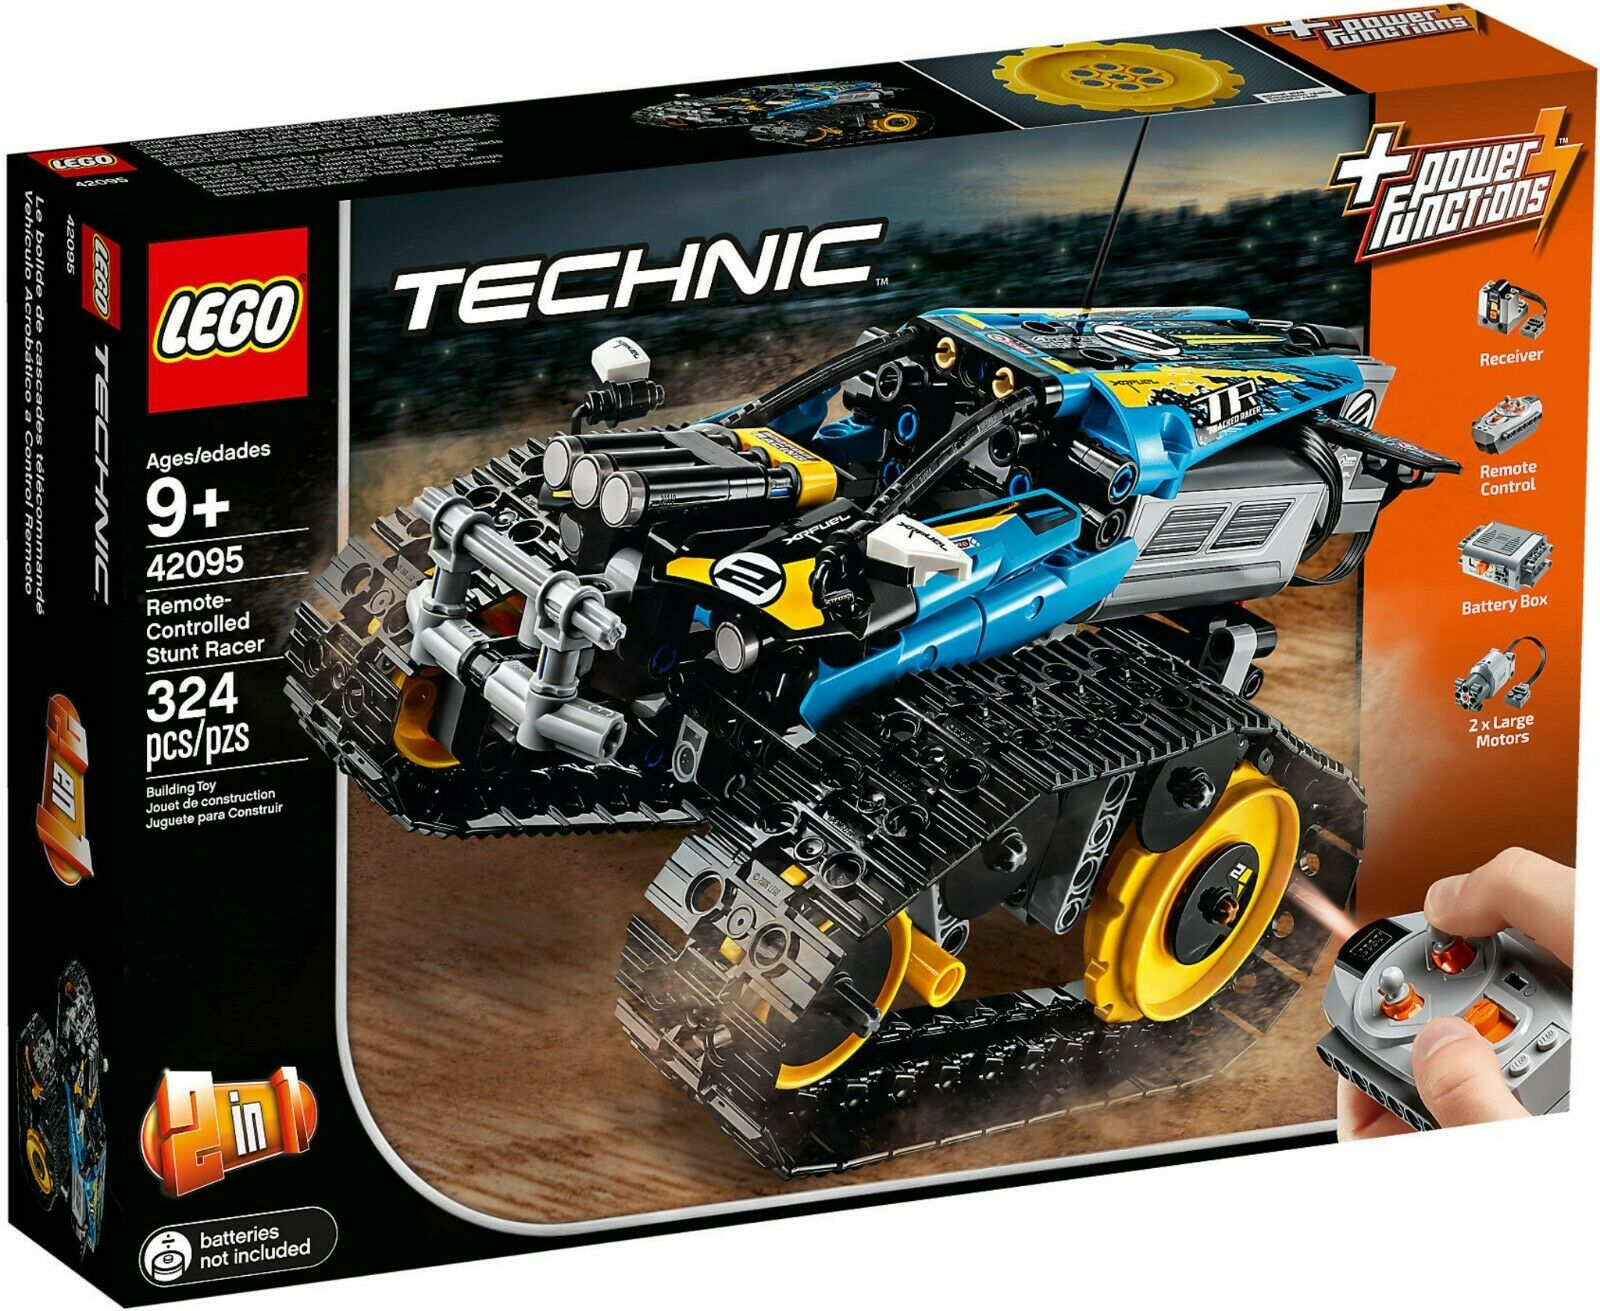 LEGO Technic 42095  - Remote controlled stunt racer   nouveau sealed   Neuf scellé  2018 magasin